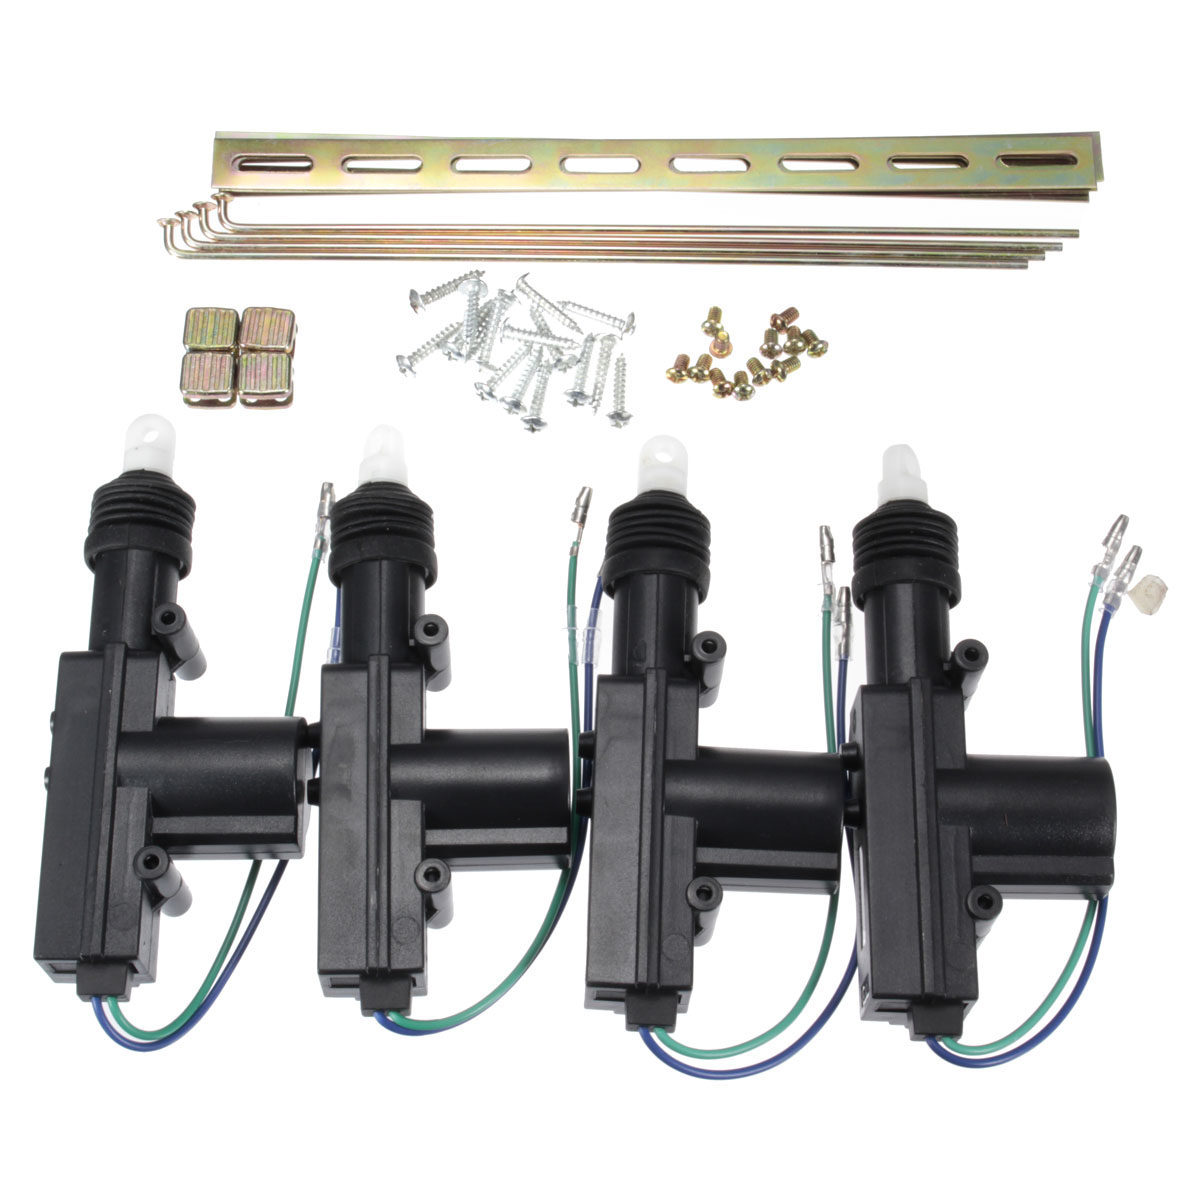 4pcs 12V Universal Auto Car Door Power Central Lock Motor 2 Wire Actuator Auto Vehicle Remote Central Locking System Motor